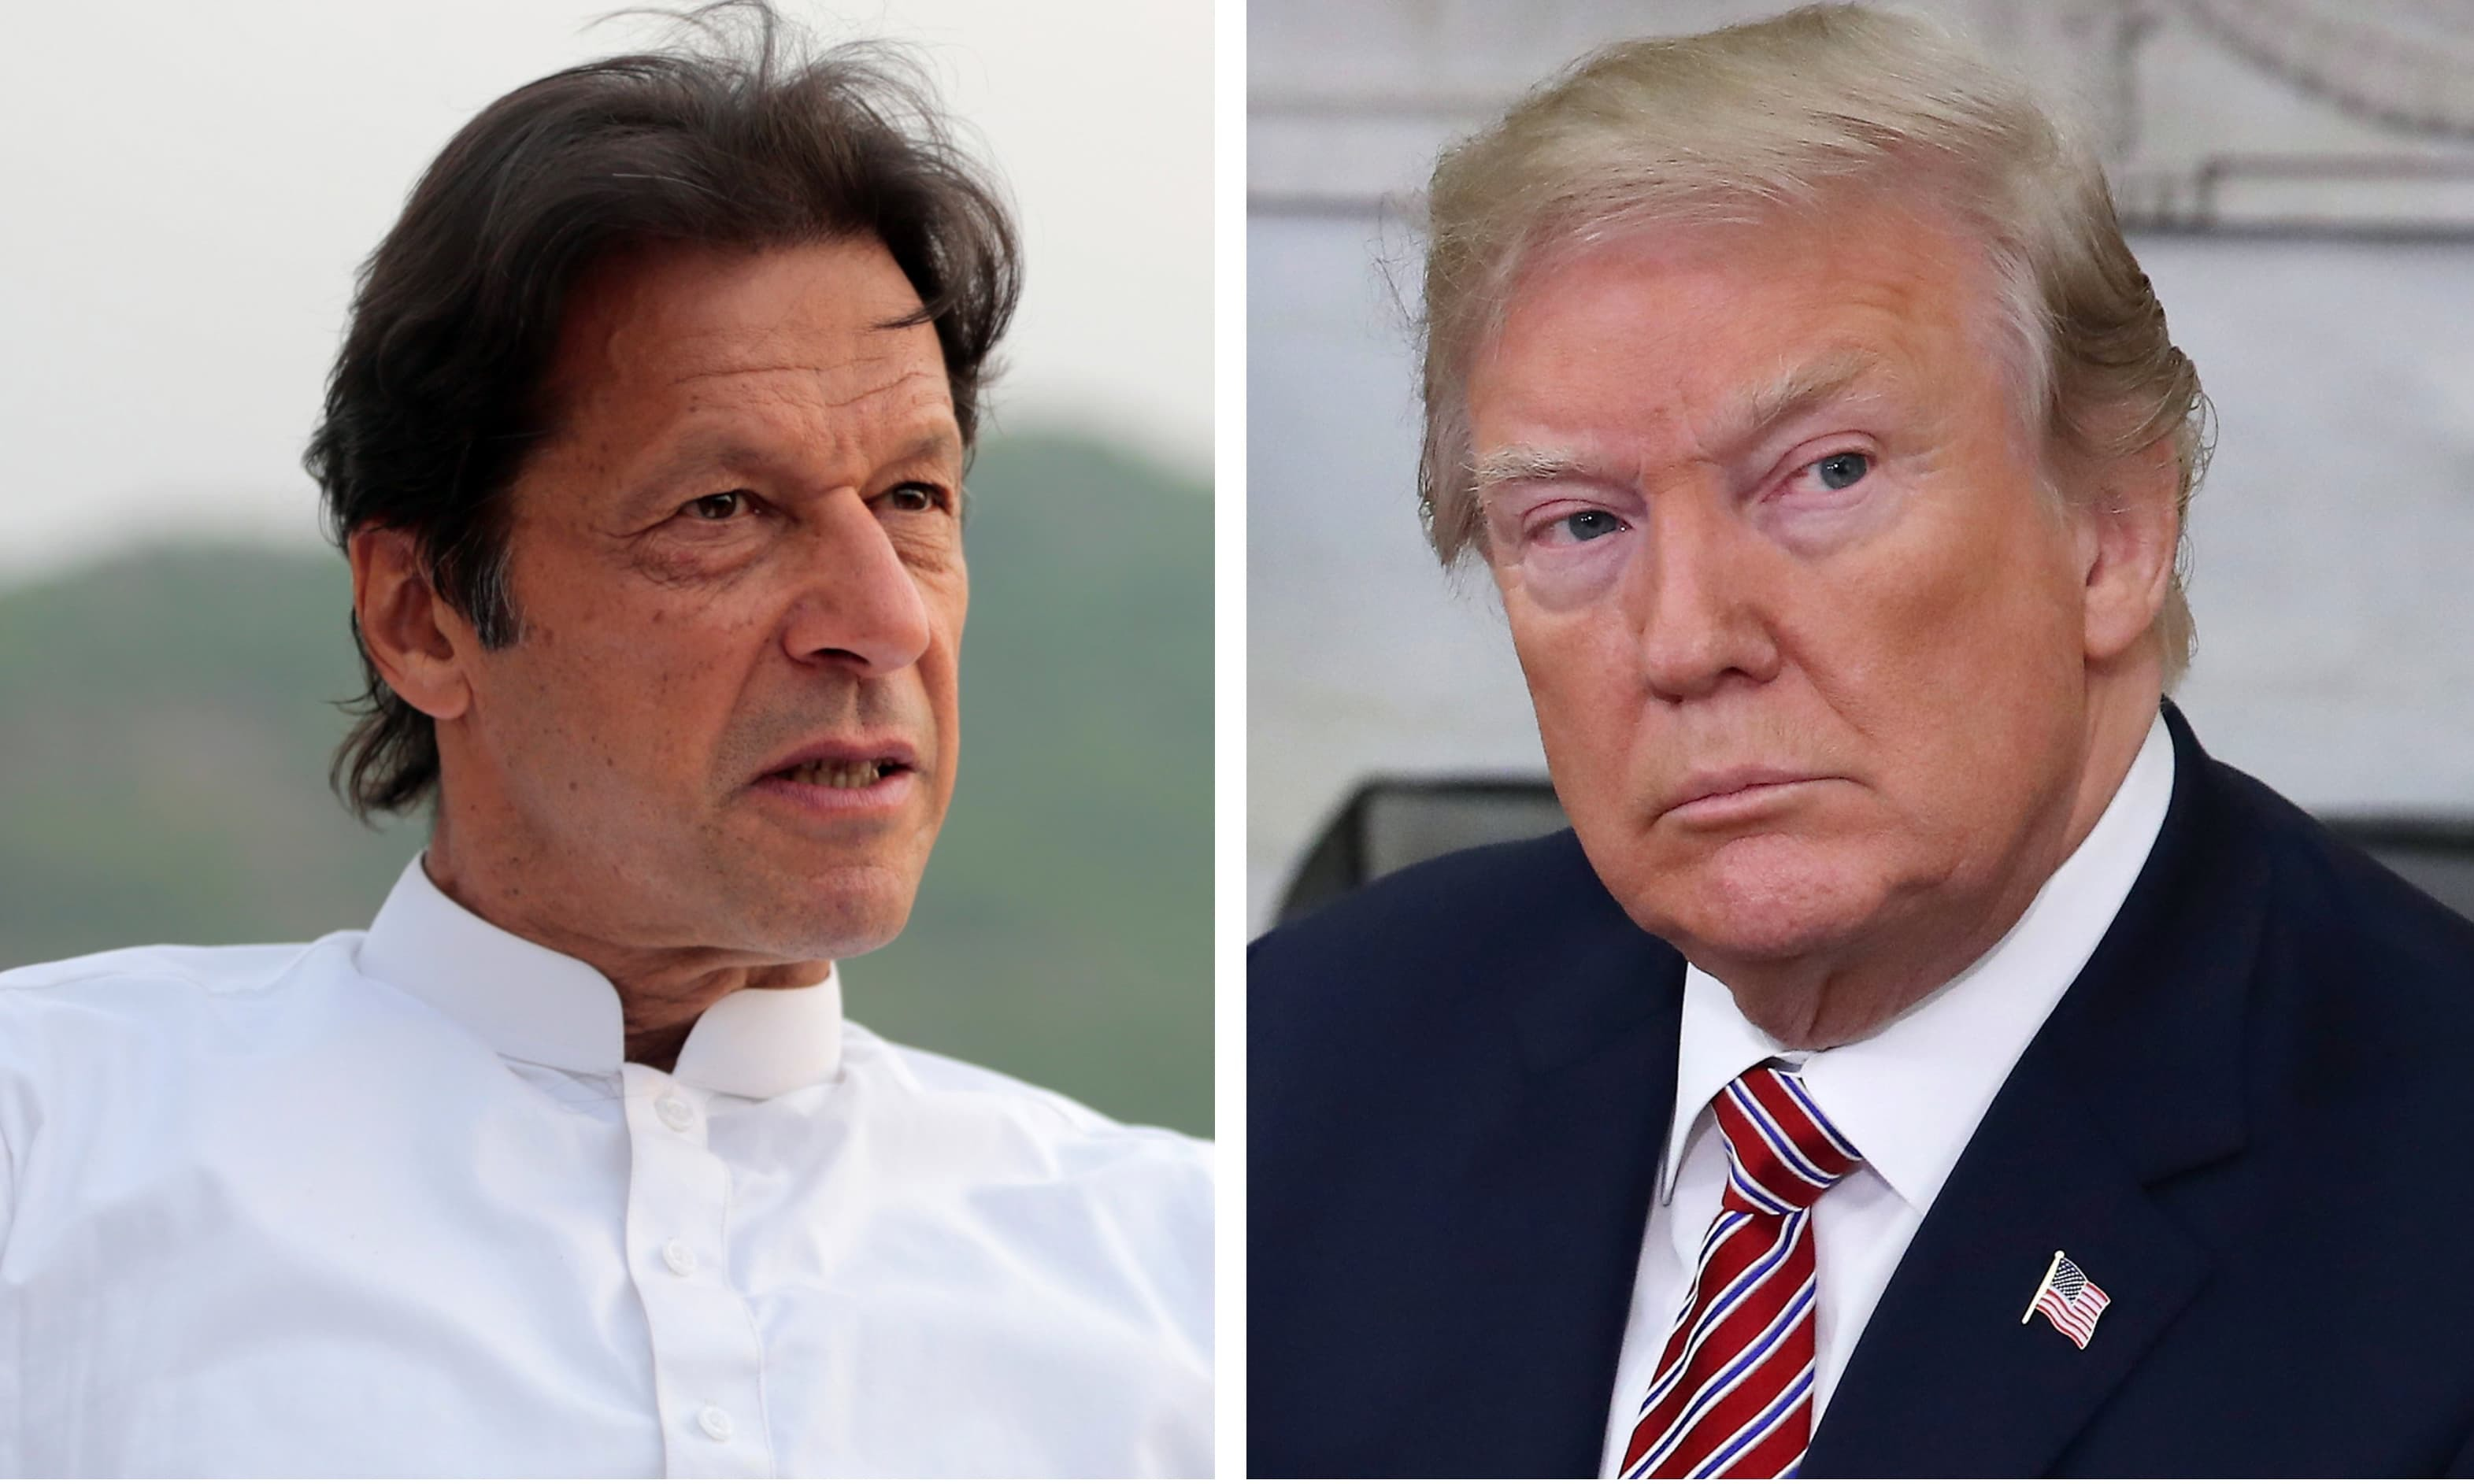 'We will do what is best for our people, our interests': PM Khan fires back after Trump tweets